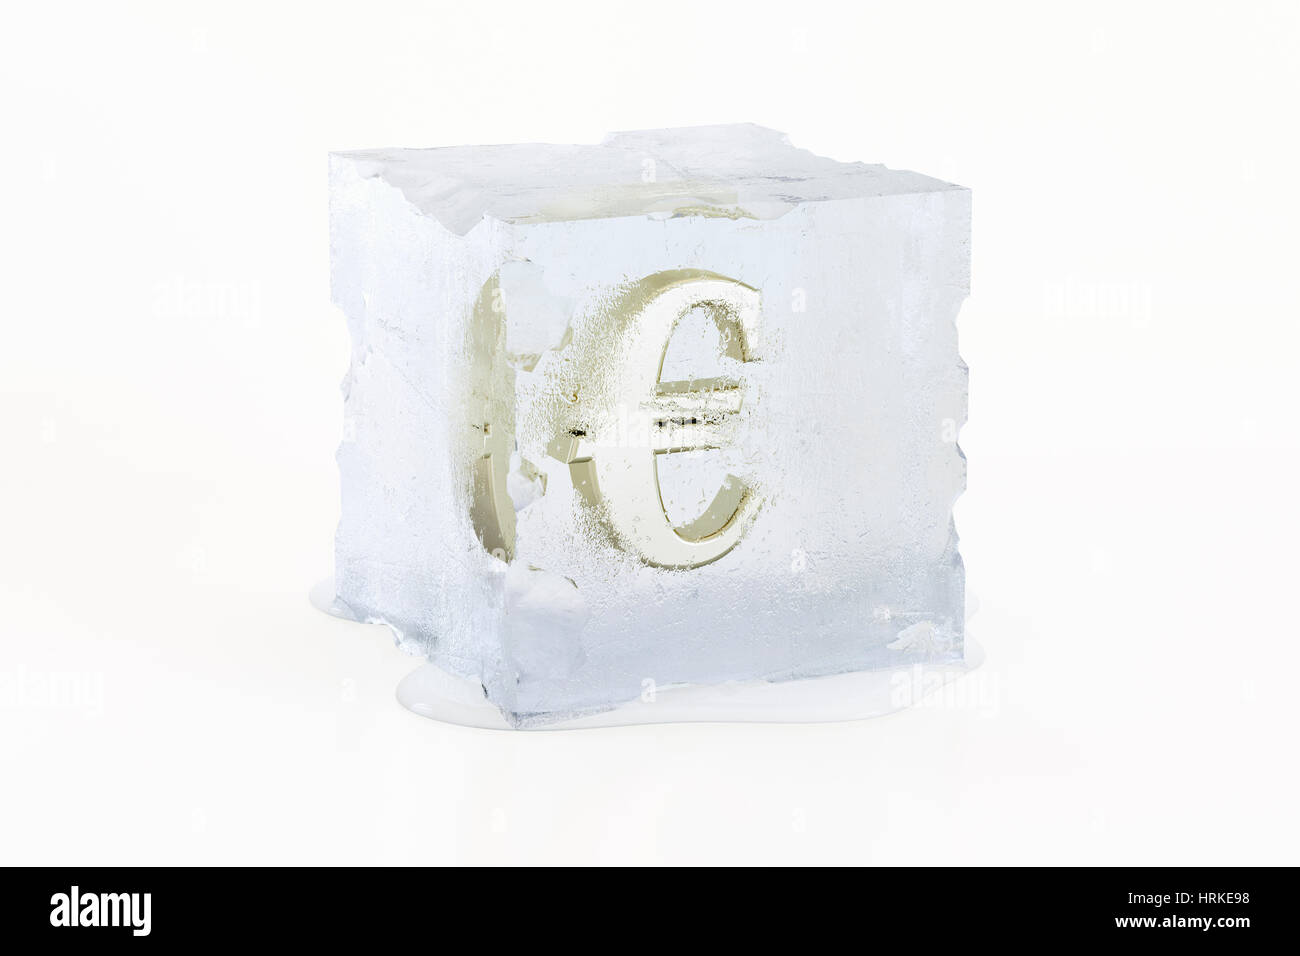 Golden Euro symbol frozen in a slowly melting ice cube - Stock Image